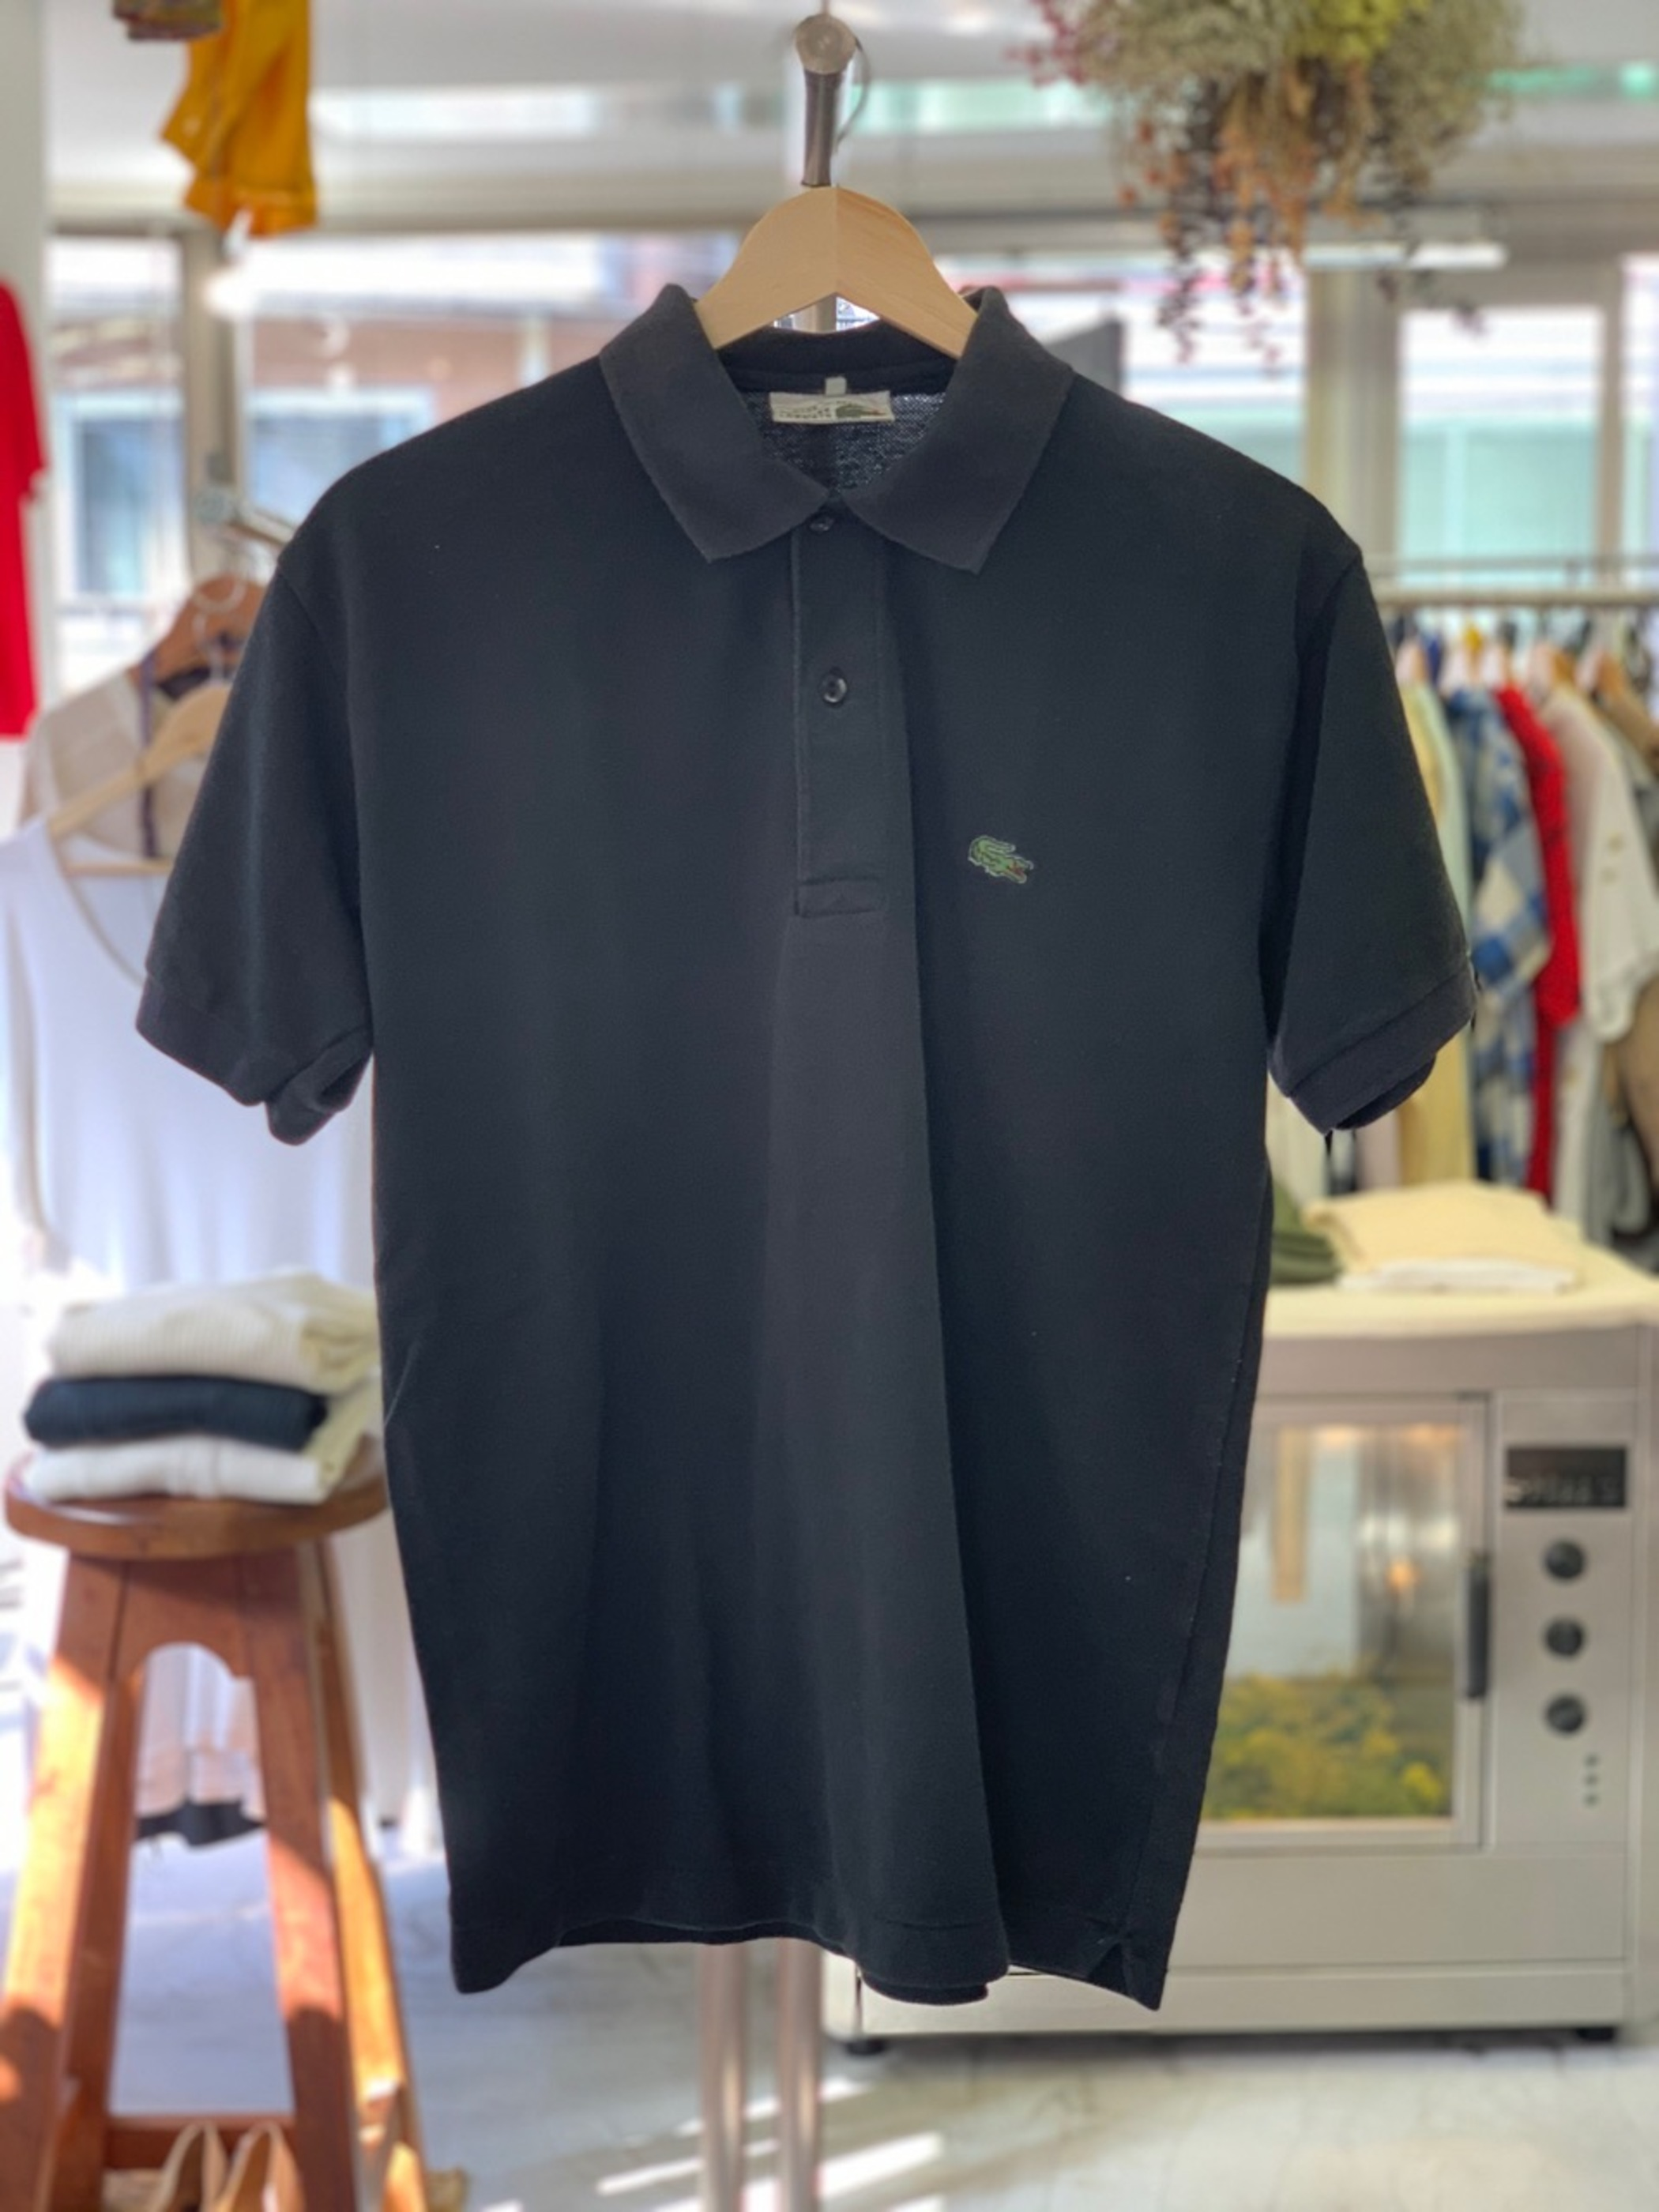 French Lacoste polo shirt black color made in France